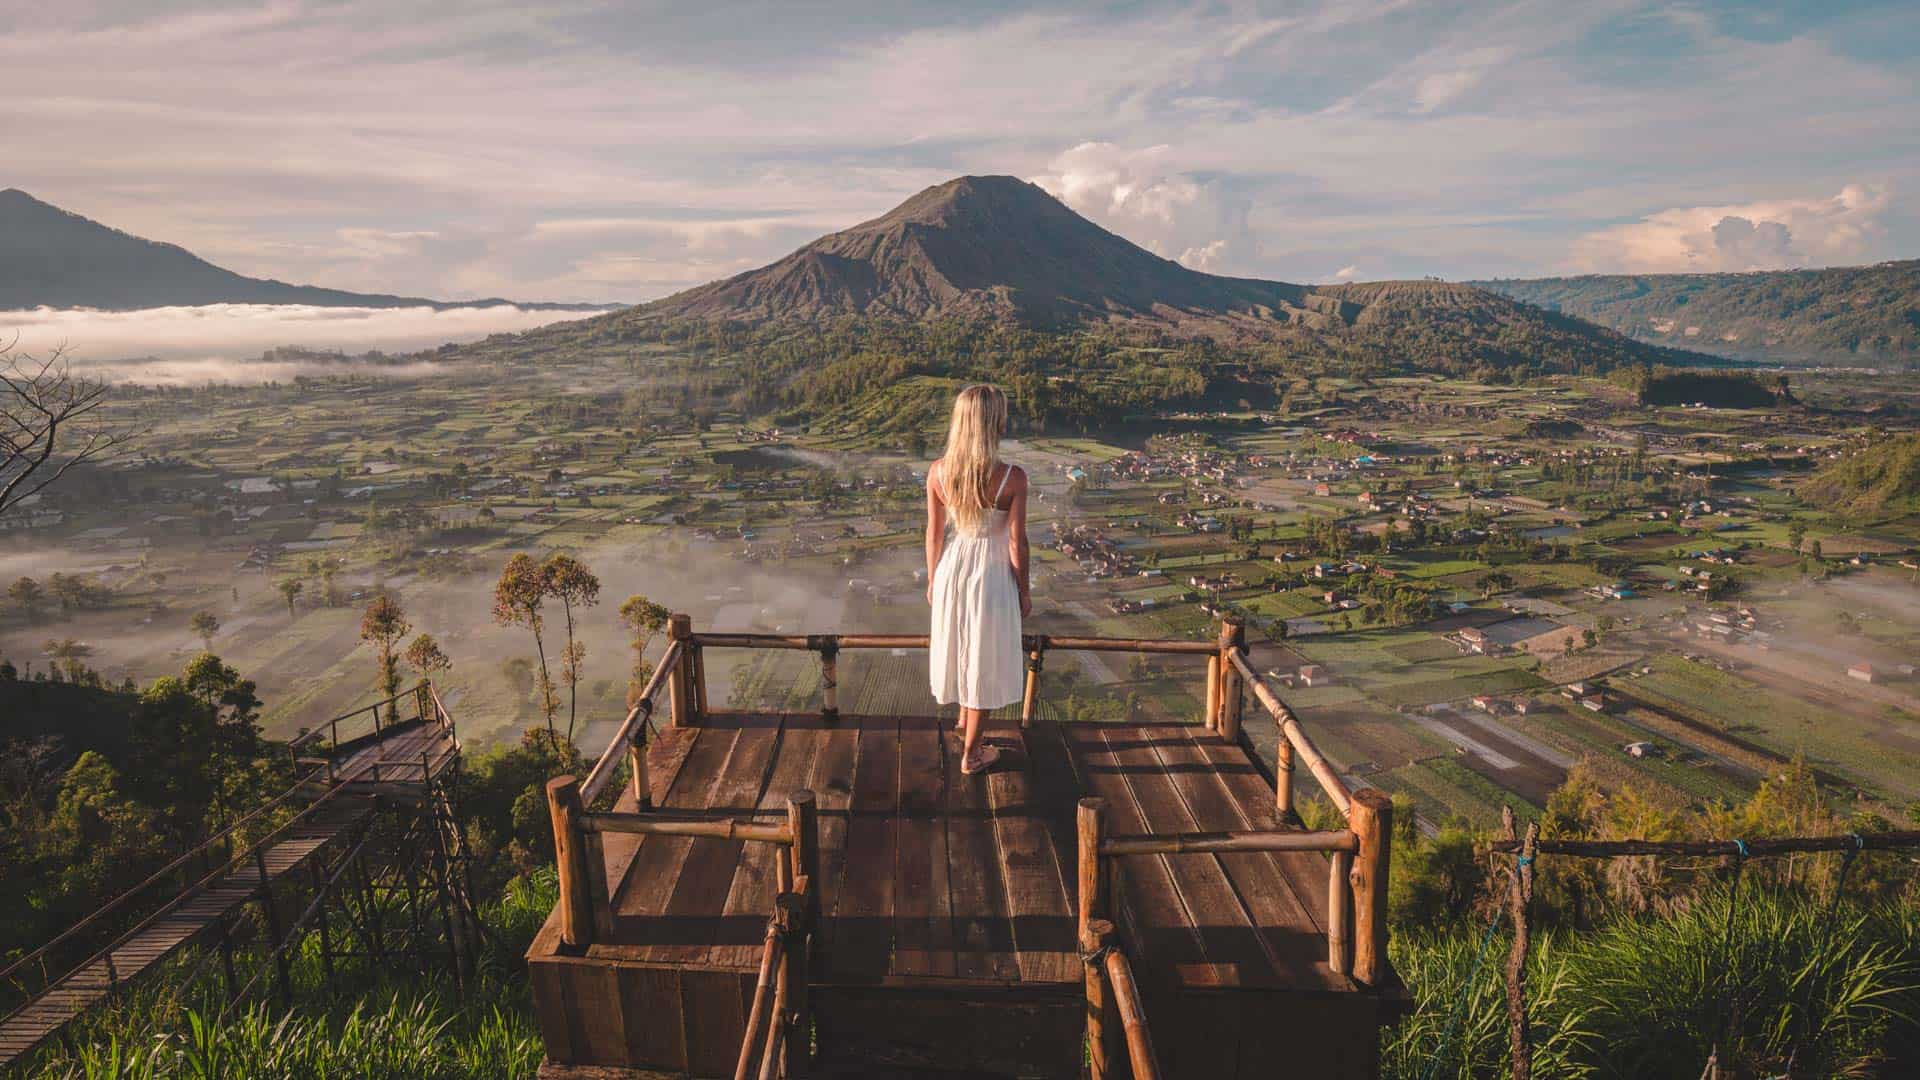 mount-batur-viewpoint-photoshoot-lake